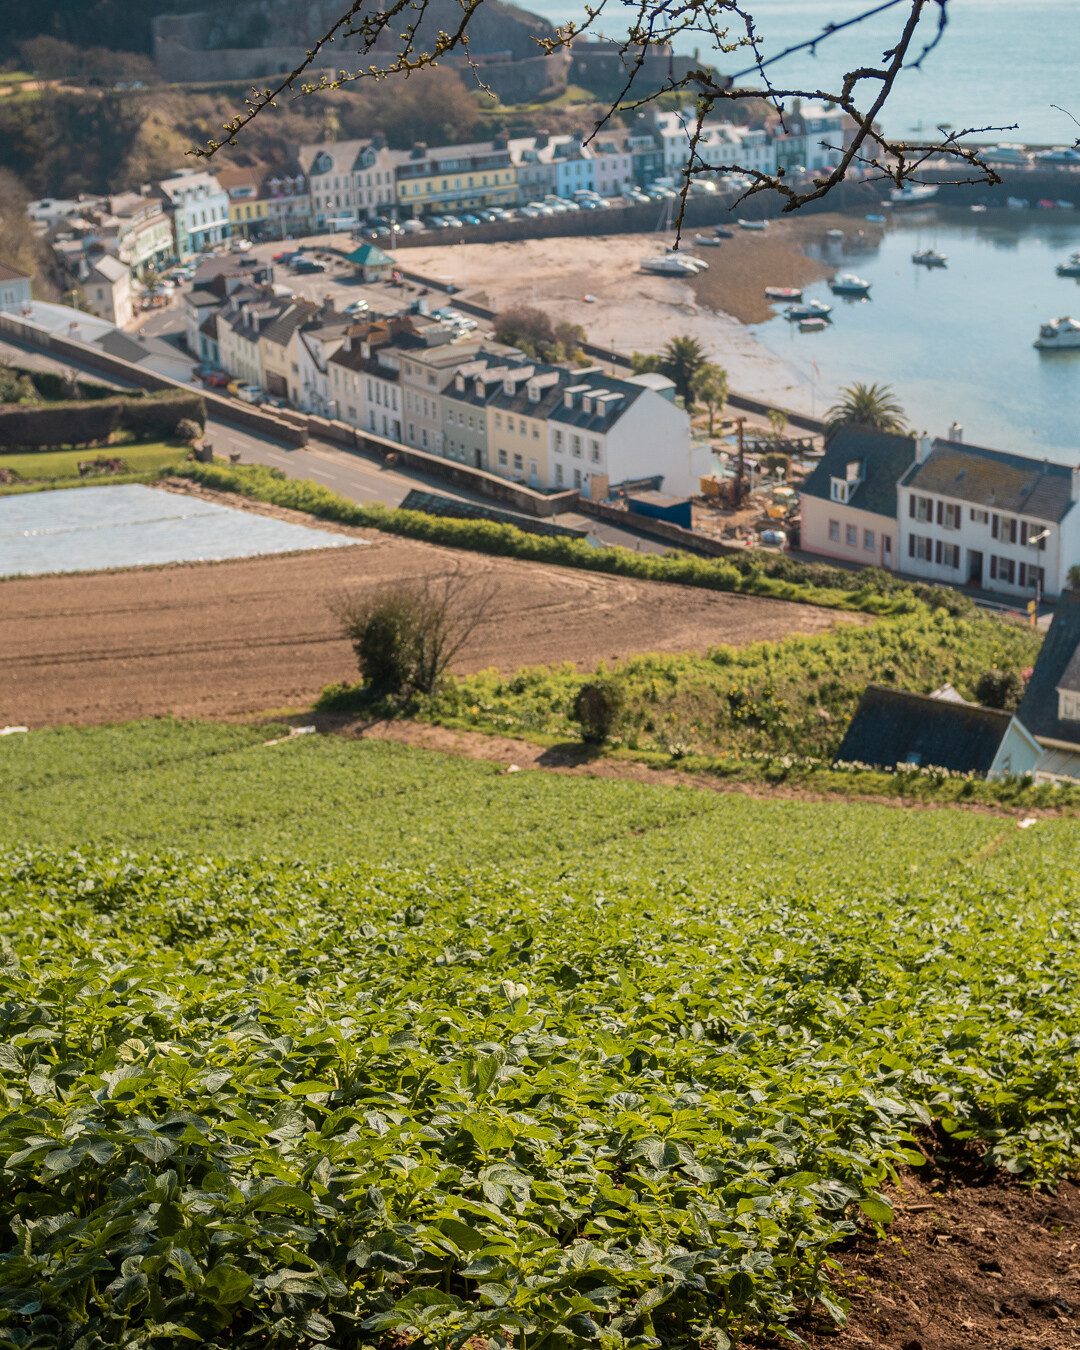 Jersey Royal potato fields